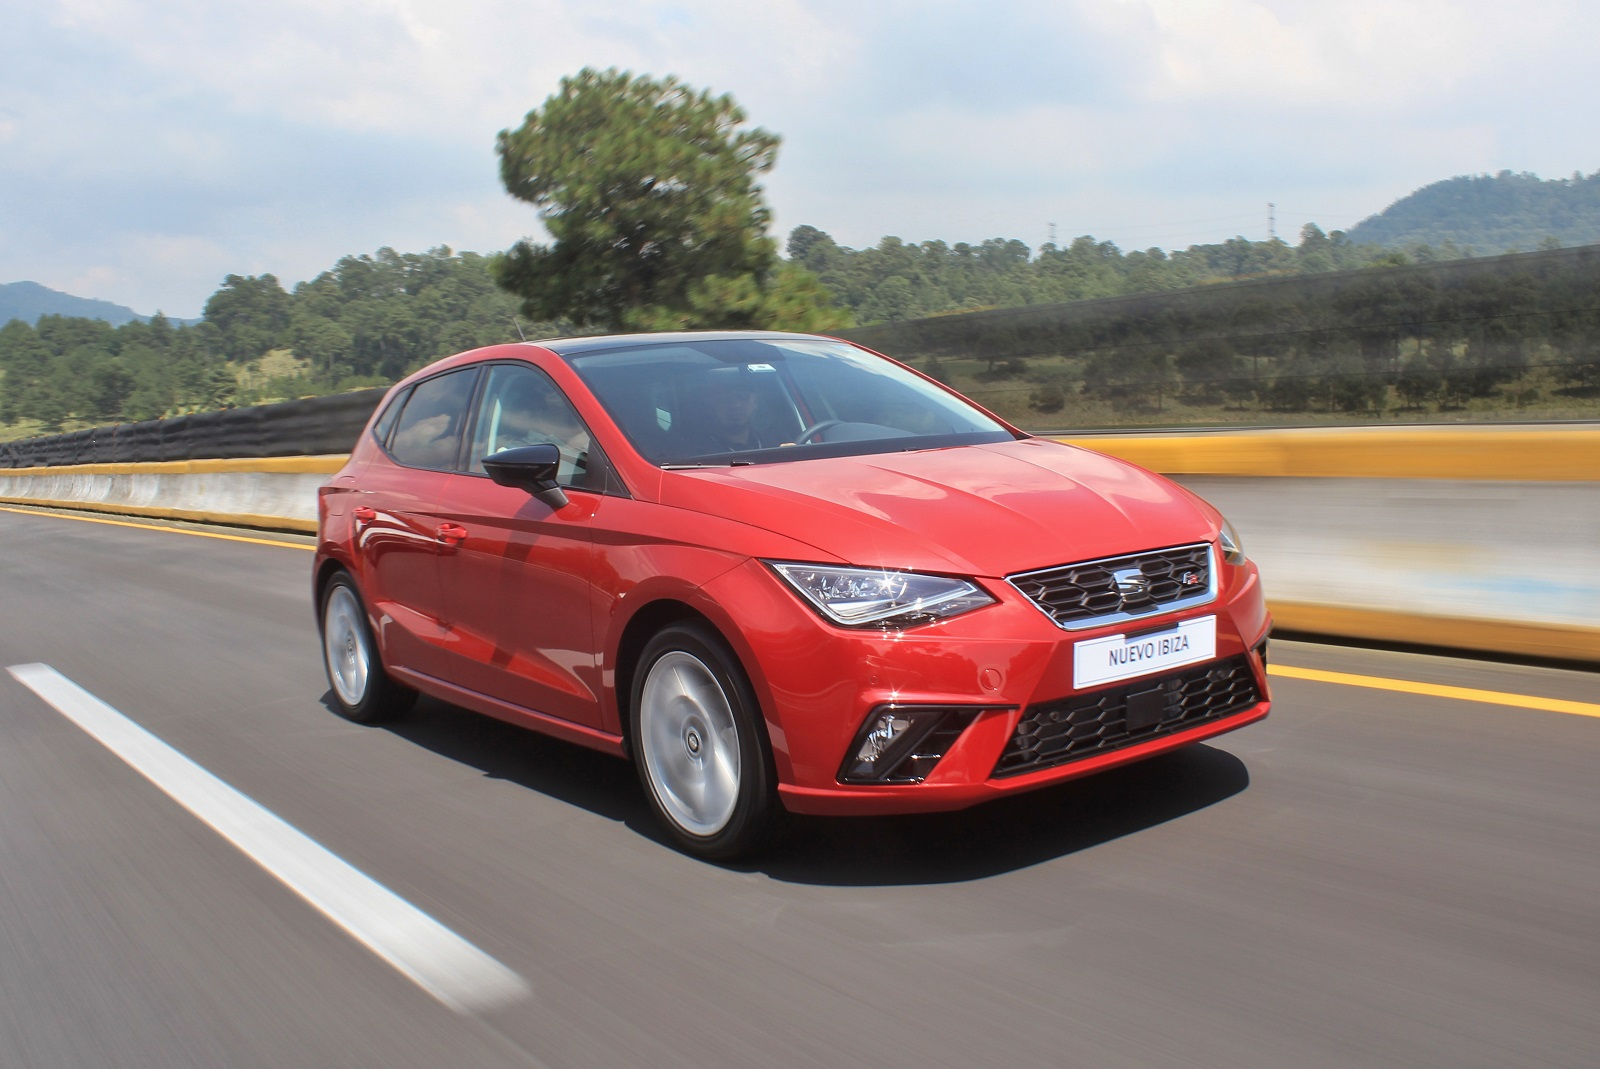 seat ibiza fr 1 0 tsi llega a m xico por 324 500 autos y moda m xico. Black Bedroom Furniture Sets. Home Design Ideas